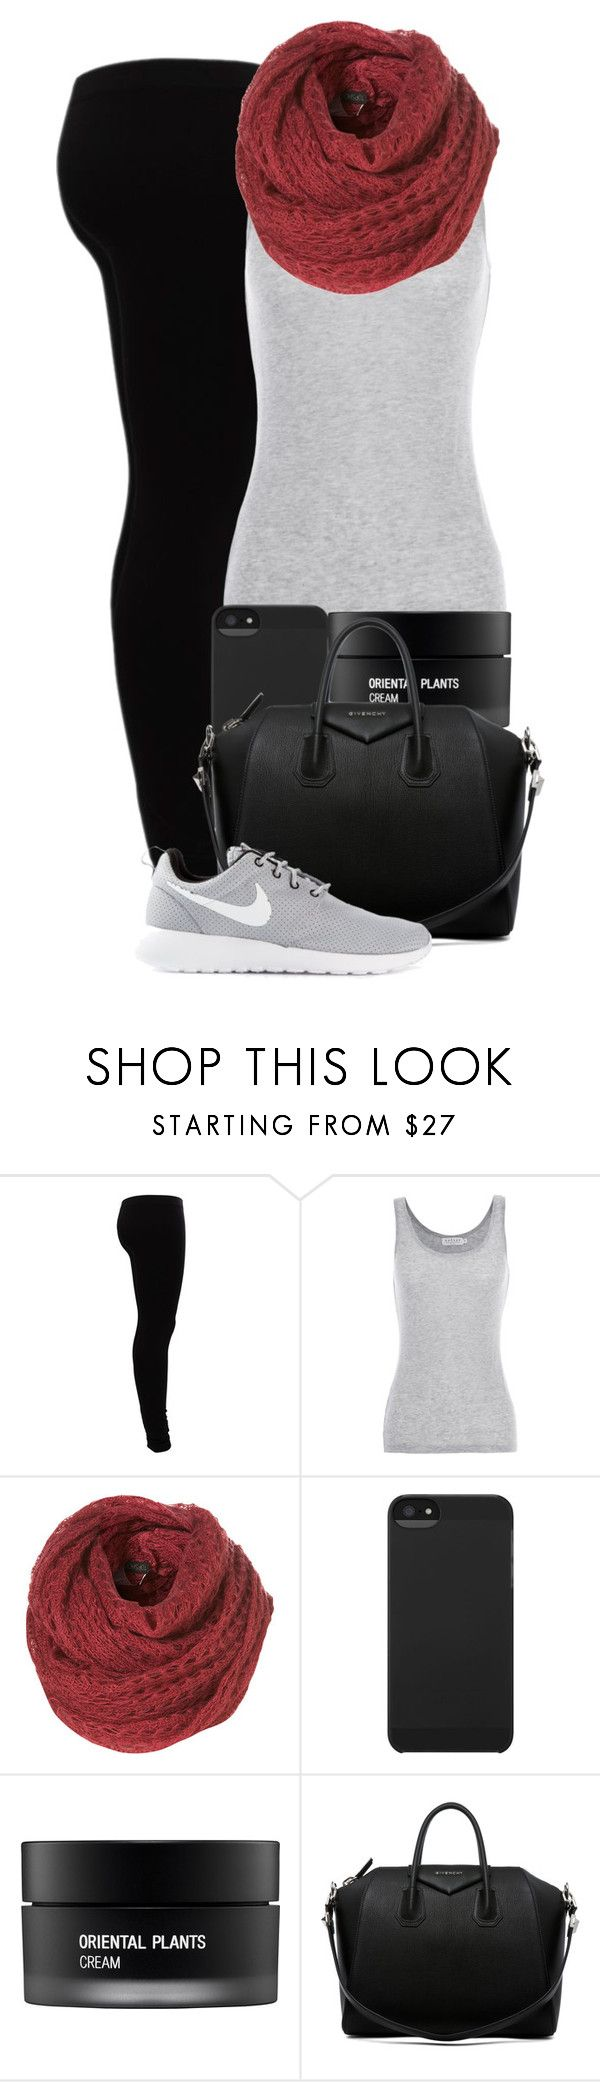 """#6"" by oneandonlyfashion ❤ liked on Polyvore featuring Gestuz, Velvet by Graham & Spencer, Incase, Koh Gen Do, Givenchy and NIKE"